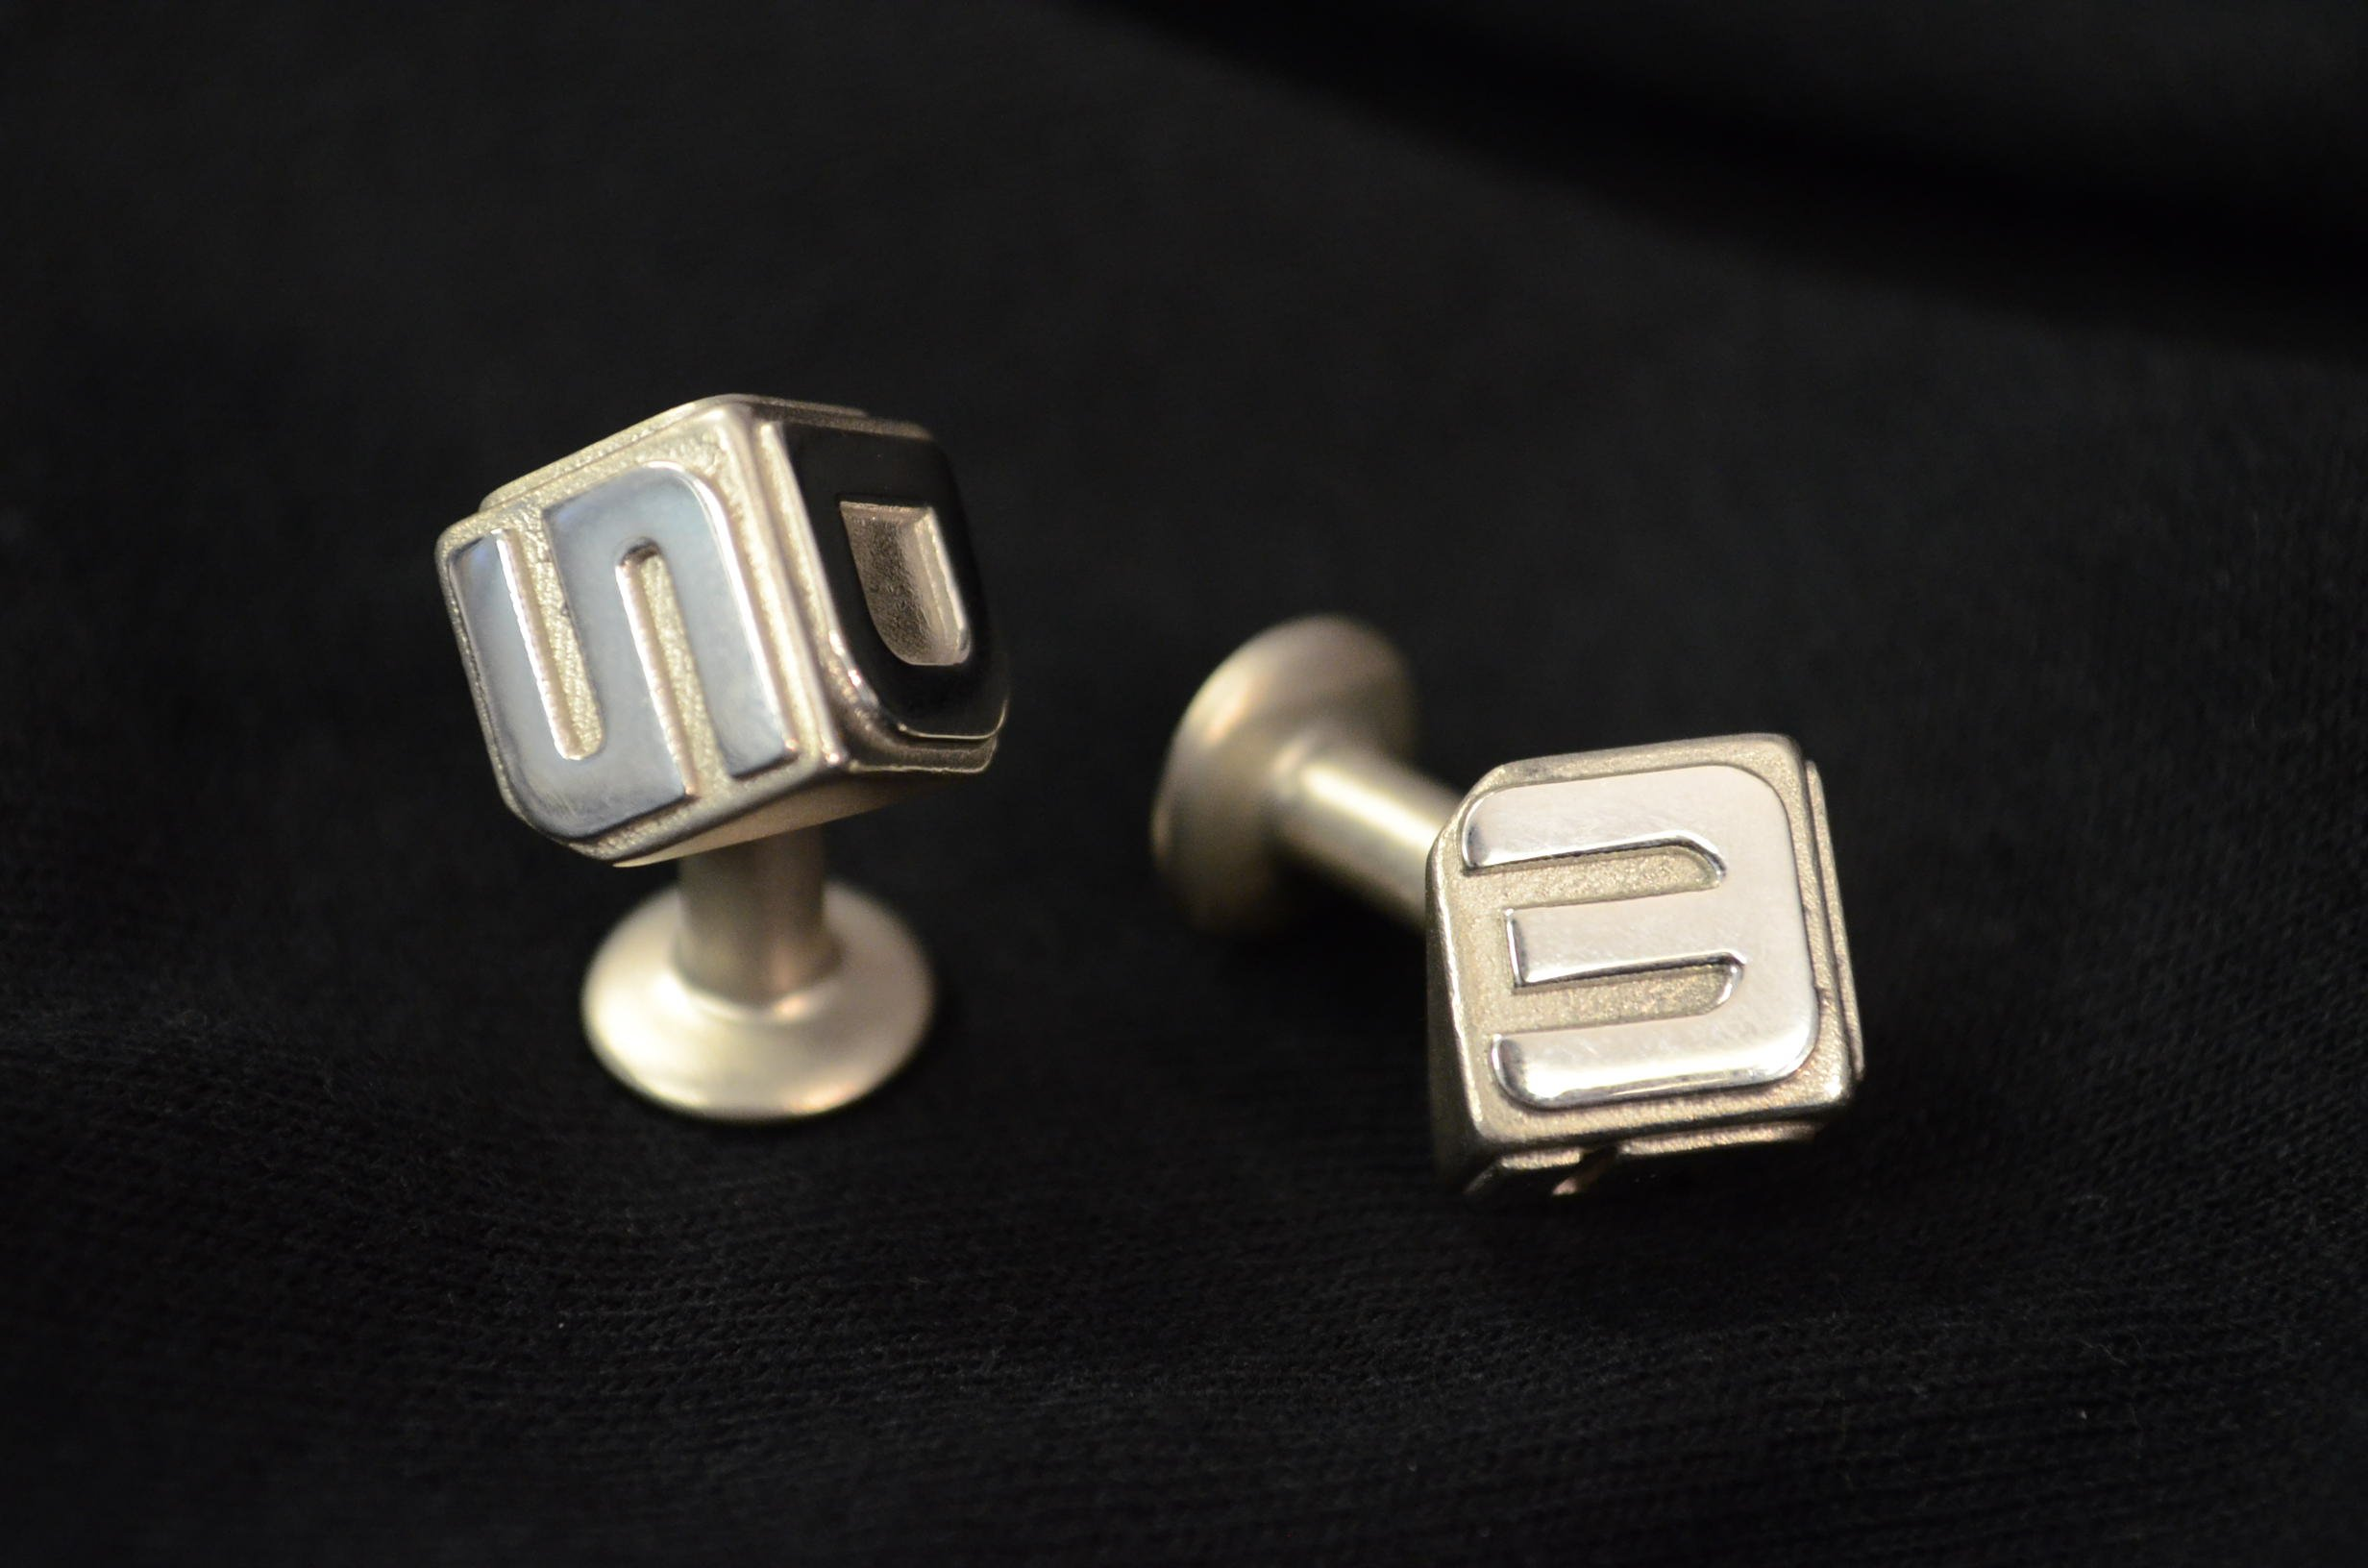 Finished 3D Systems cufflinks in sterling silver